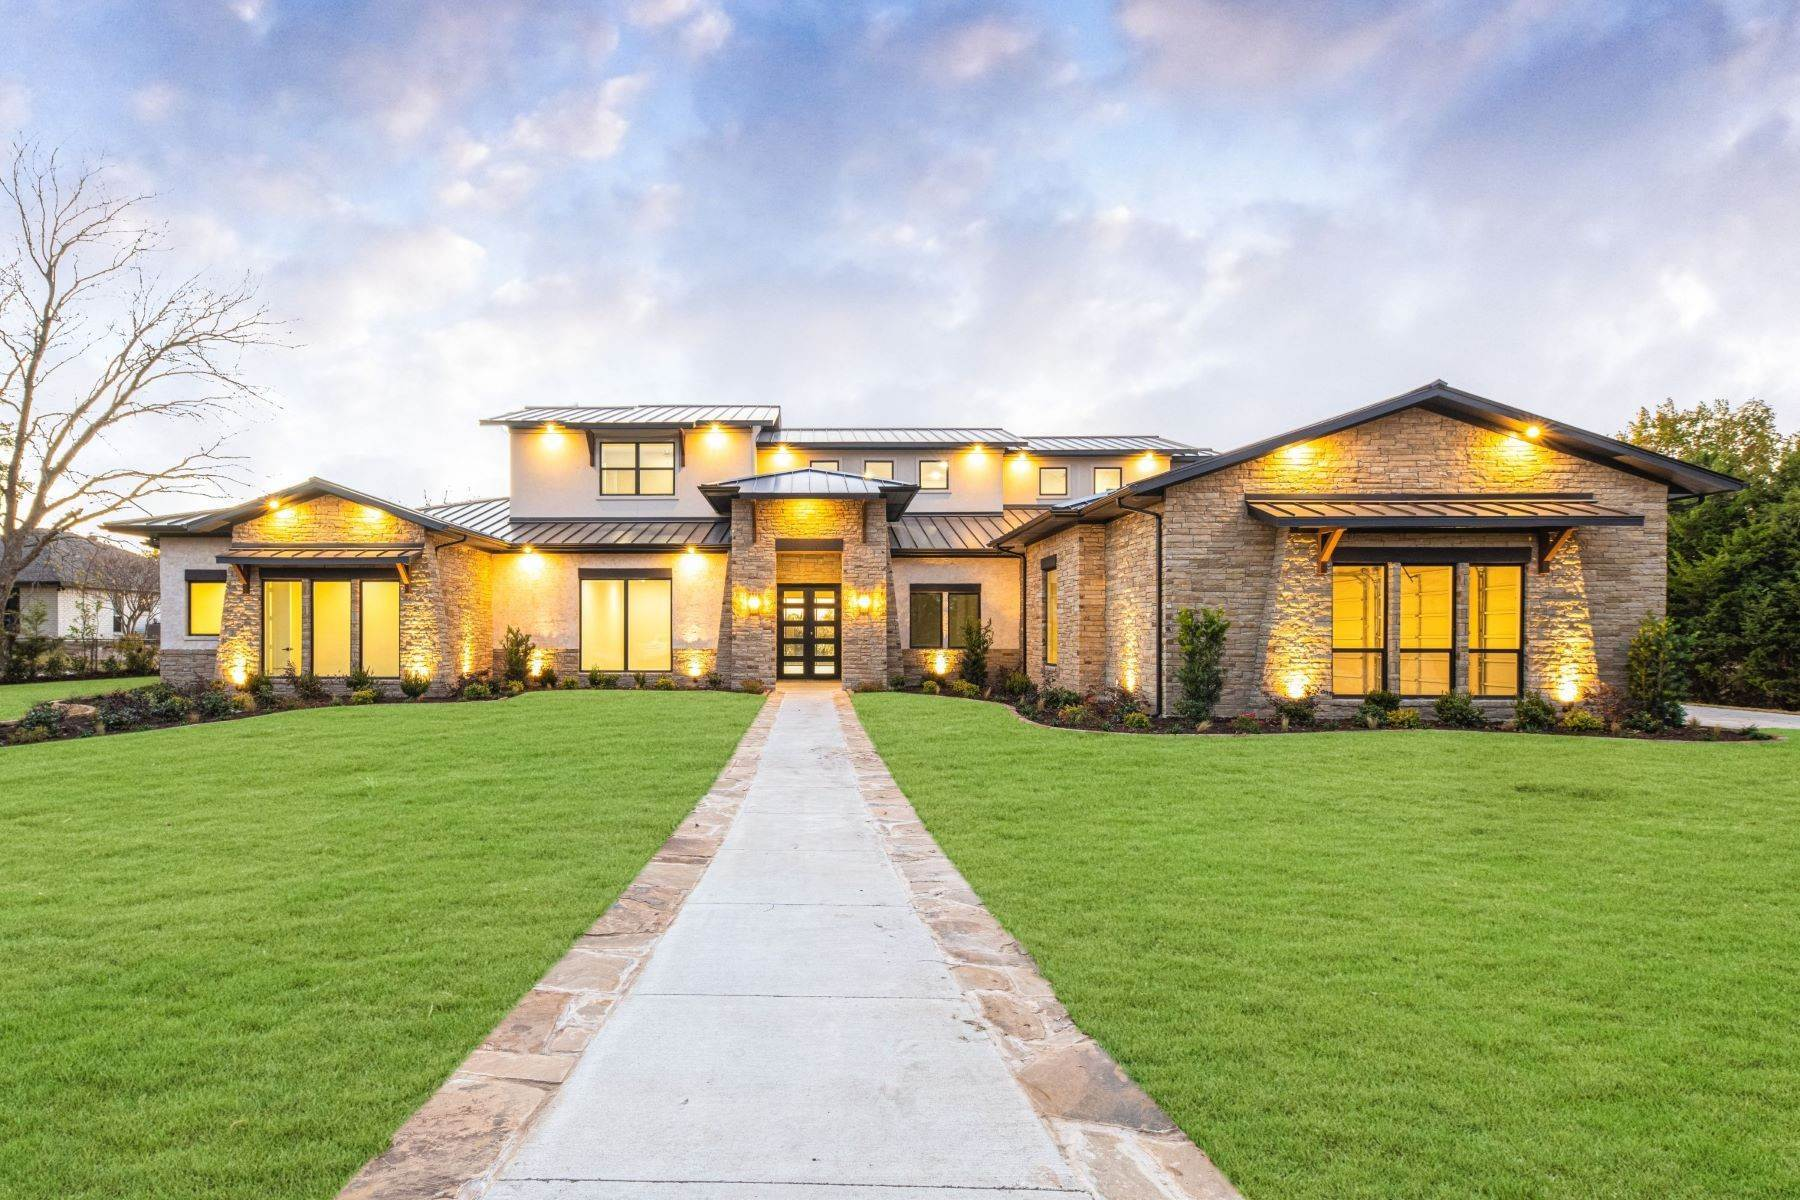 Single Family Homes for Sale at Lakefront Hill Country Contemporary 1420 Hubbard Drive Heath, Texas 75032 United States